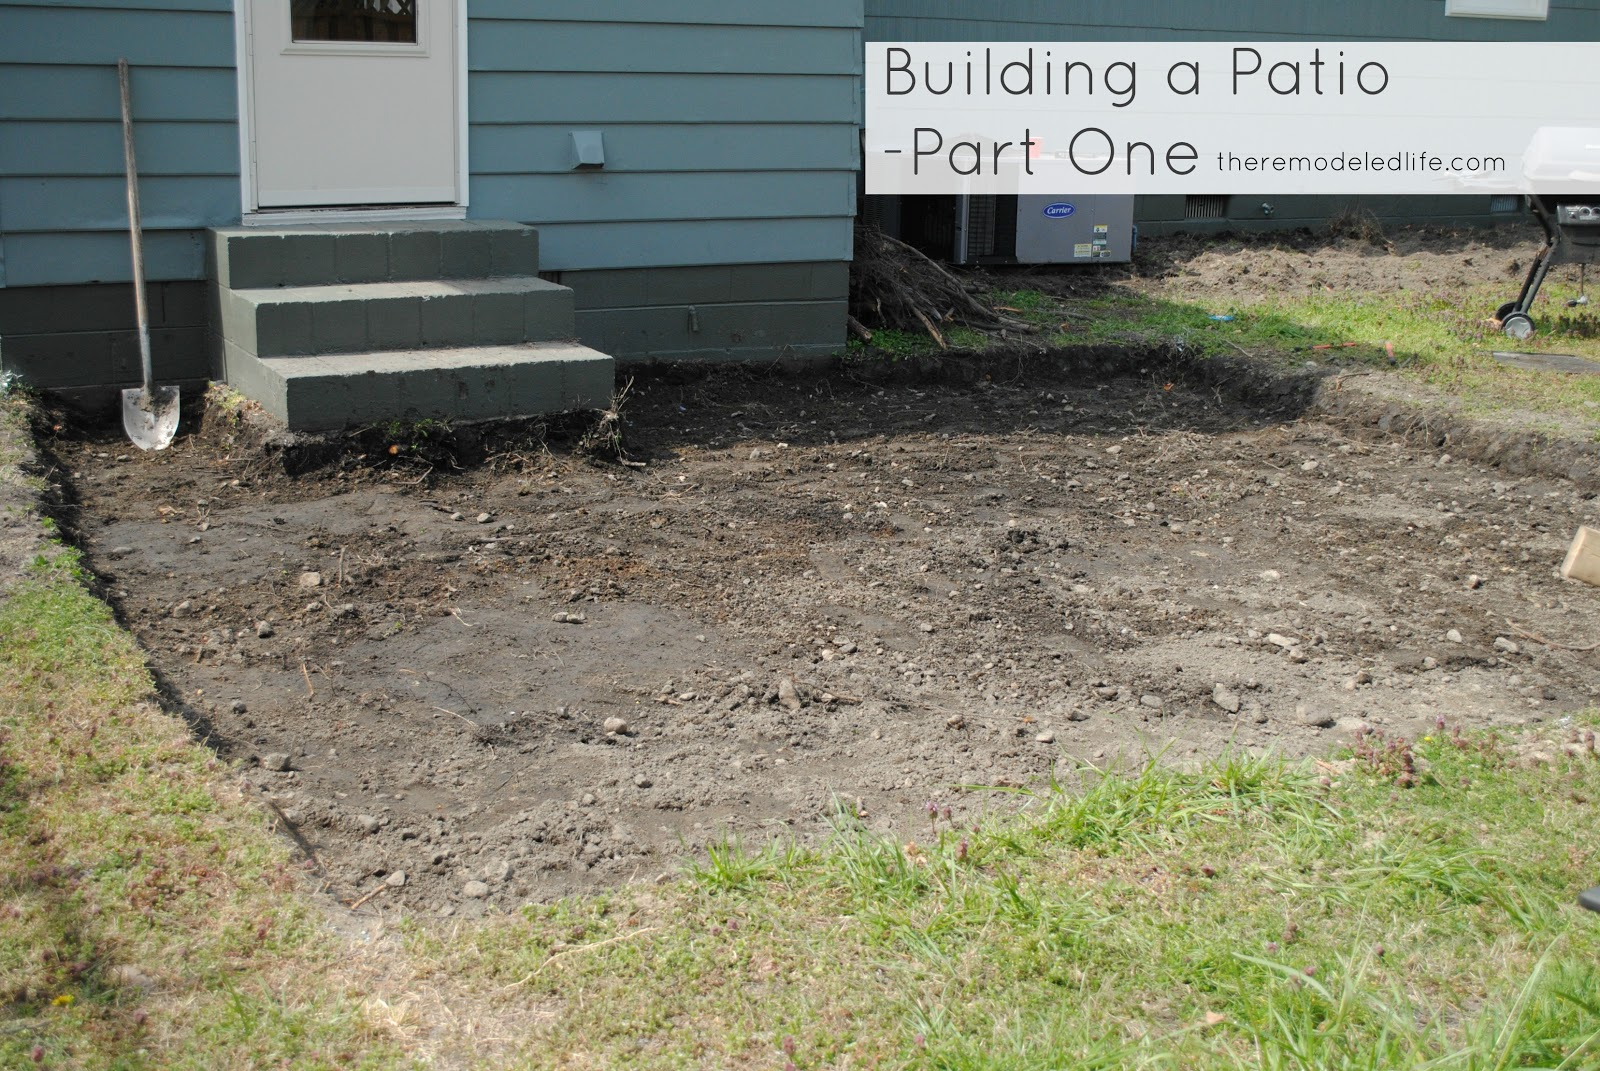 The Remodeled Life: Building a Patio - Part One: Digging ...